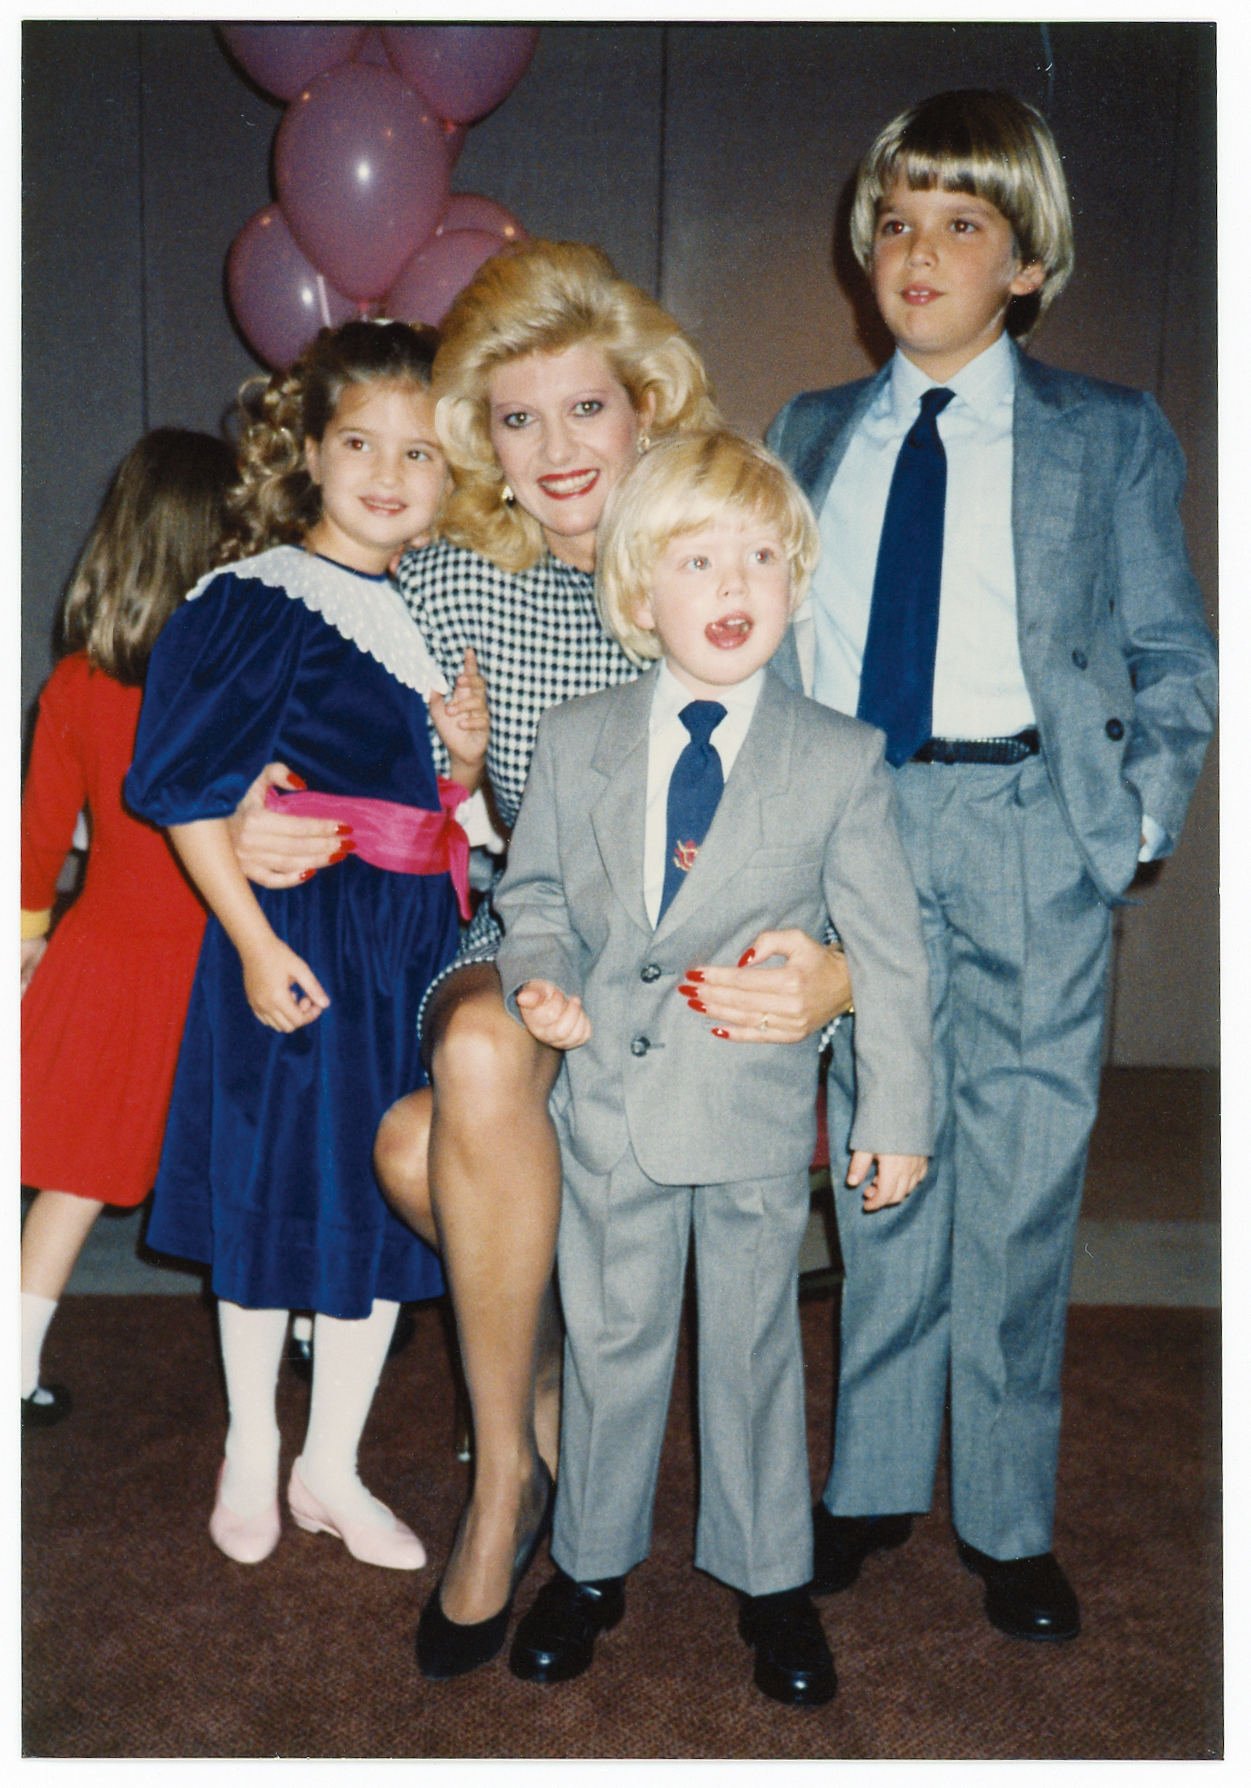 """Another Plaza birthday party. Ivanka loved those velvet dresses and the boys                                   looked adorable in their little suits, circa 1987."""